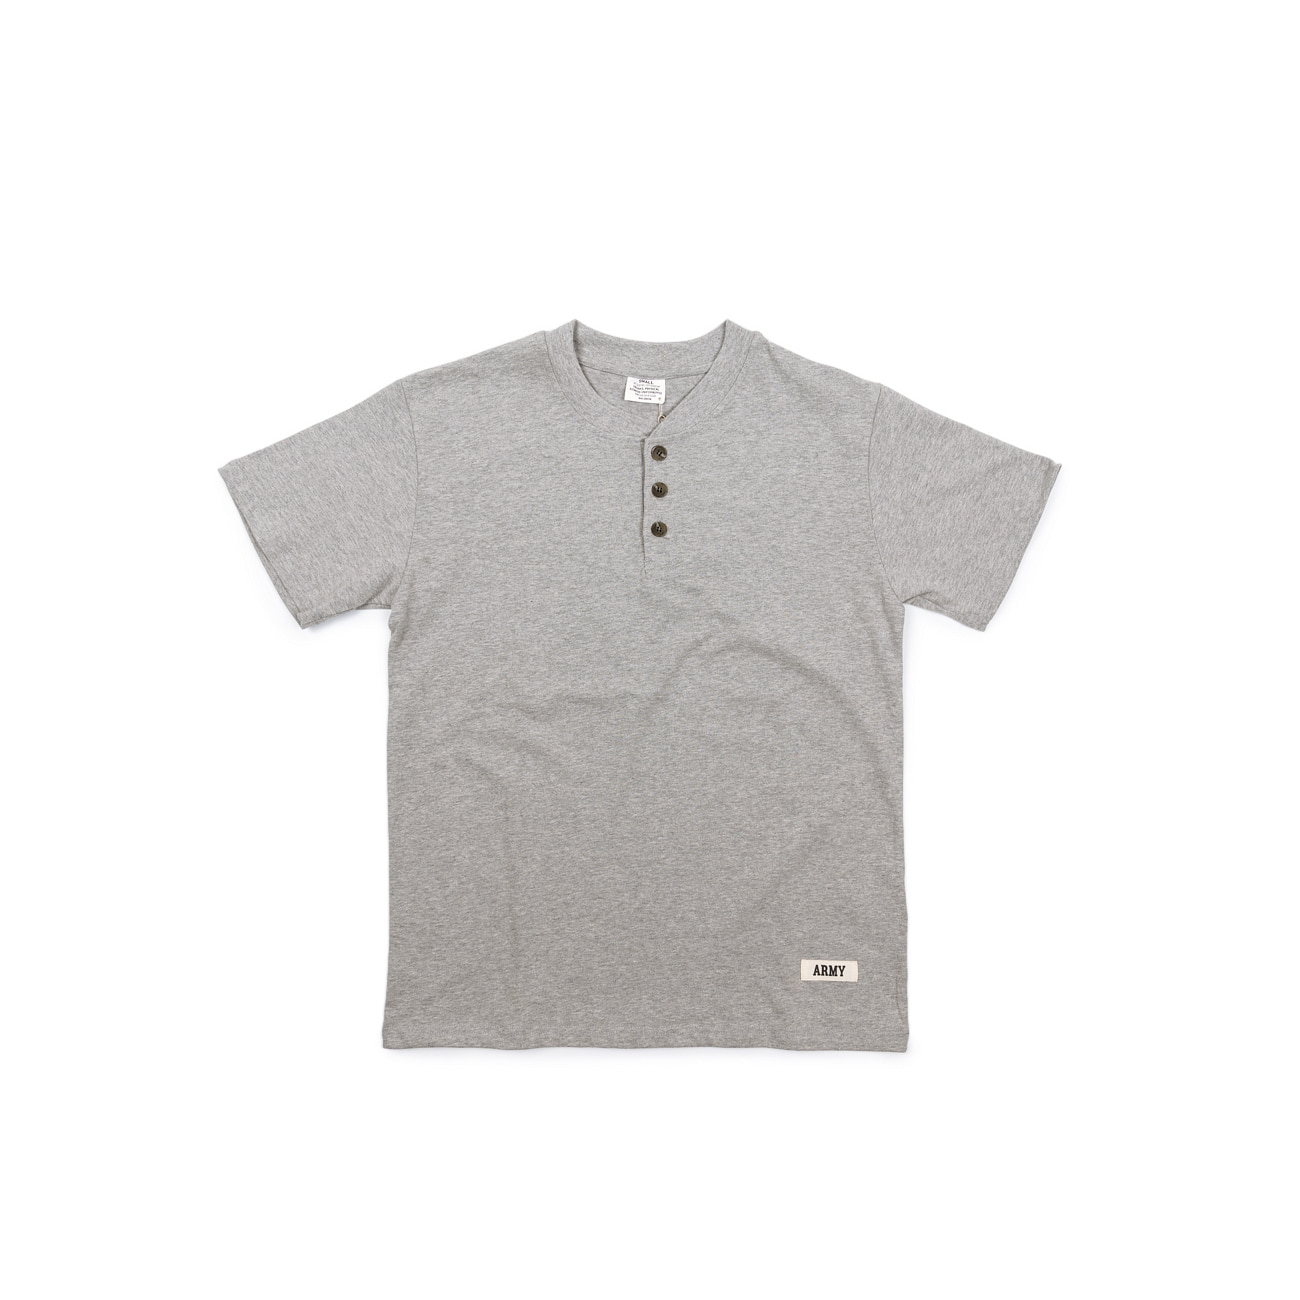 ARMY Henley Neck Tee